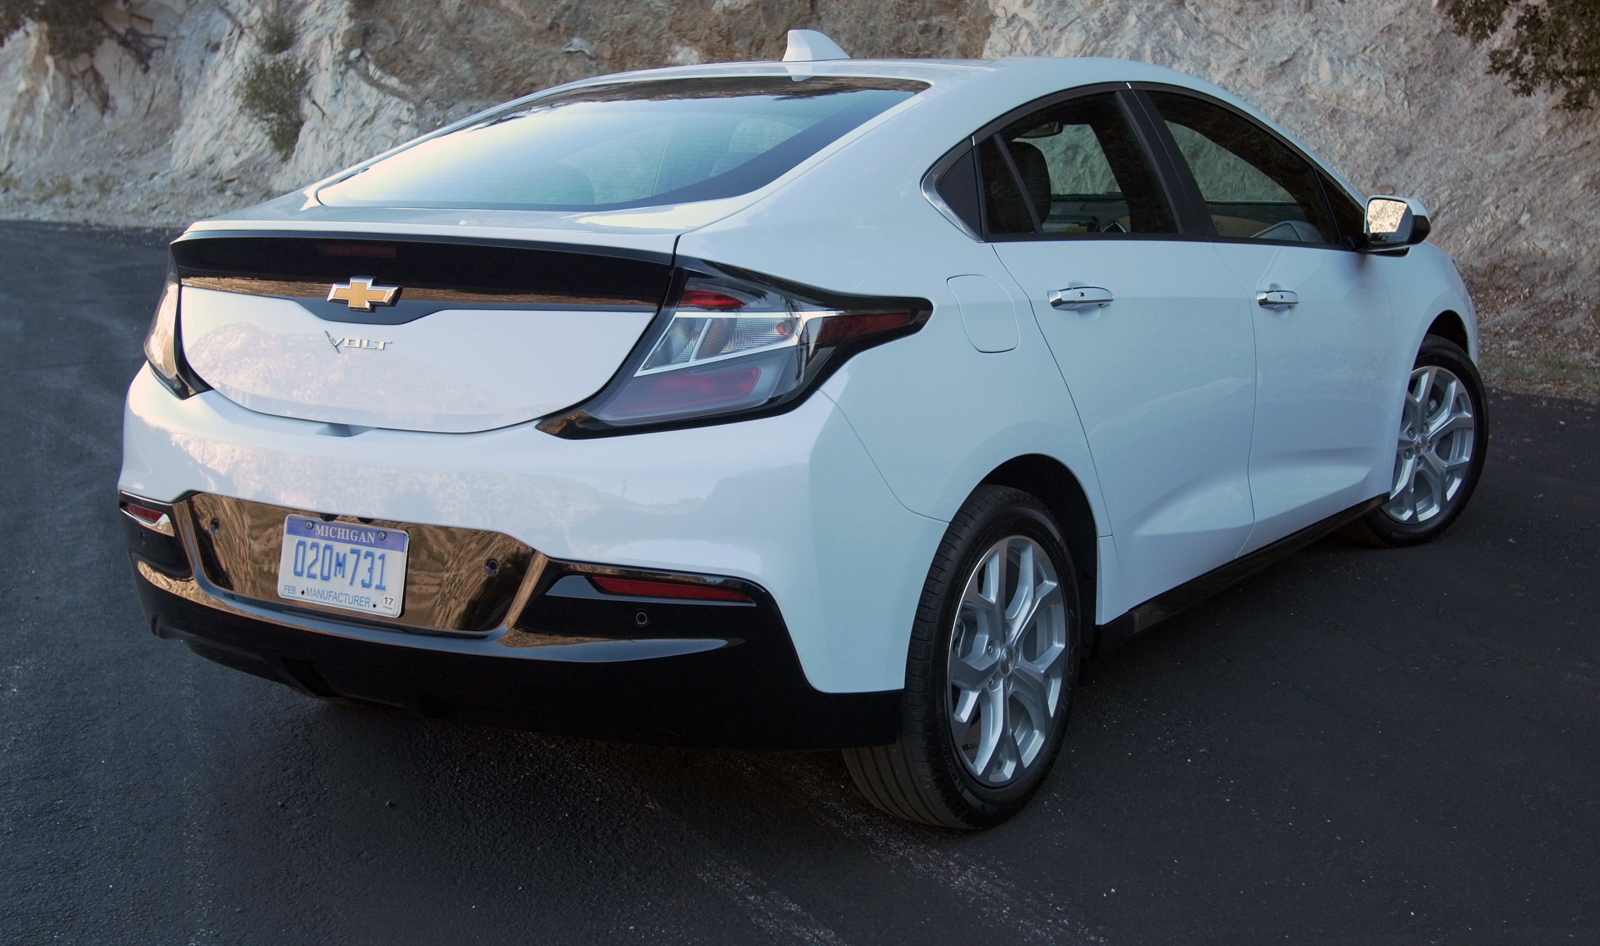 Chevrolet Volt 2016 AutoGuidecom Car of the Year Nominee